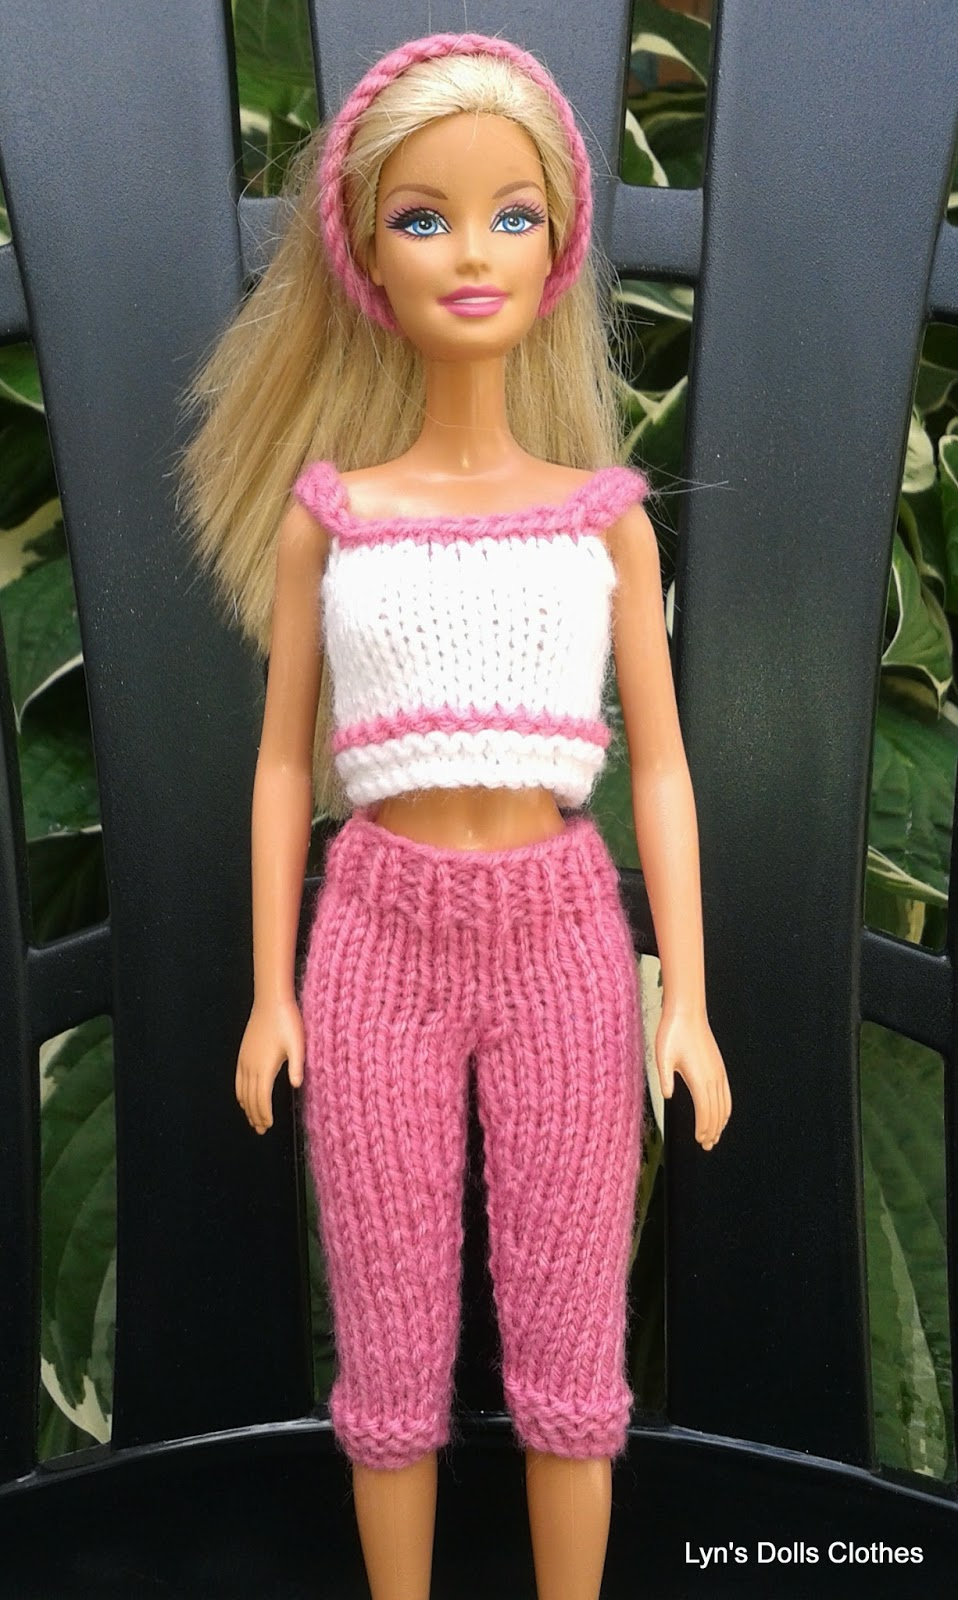 Free Barbie Knitting Patterns : Lyns Dolls Clothes: Barbie knitted capri pants and cropped top